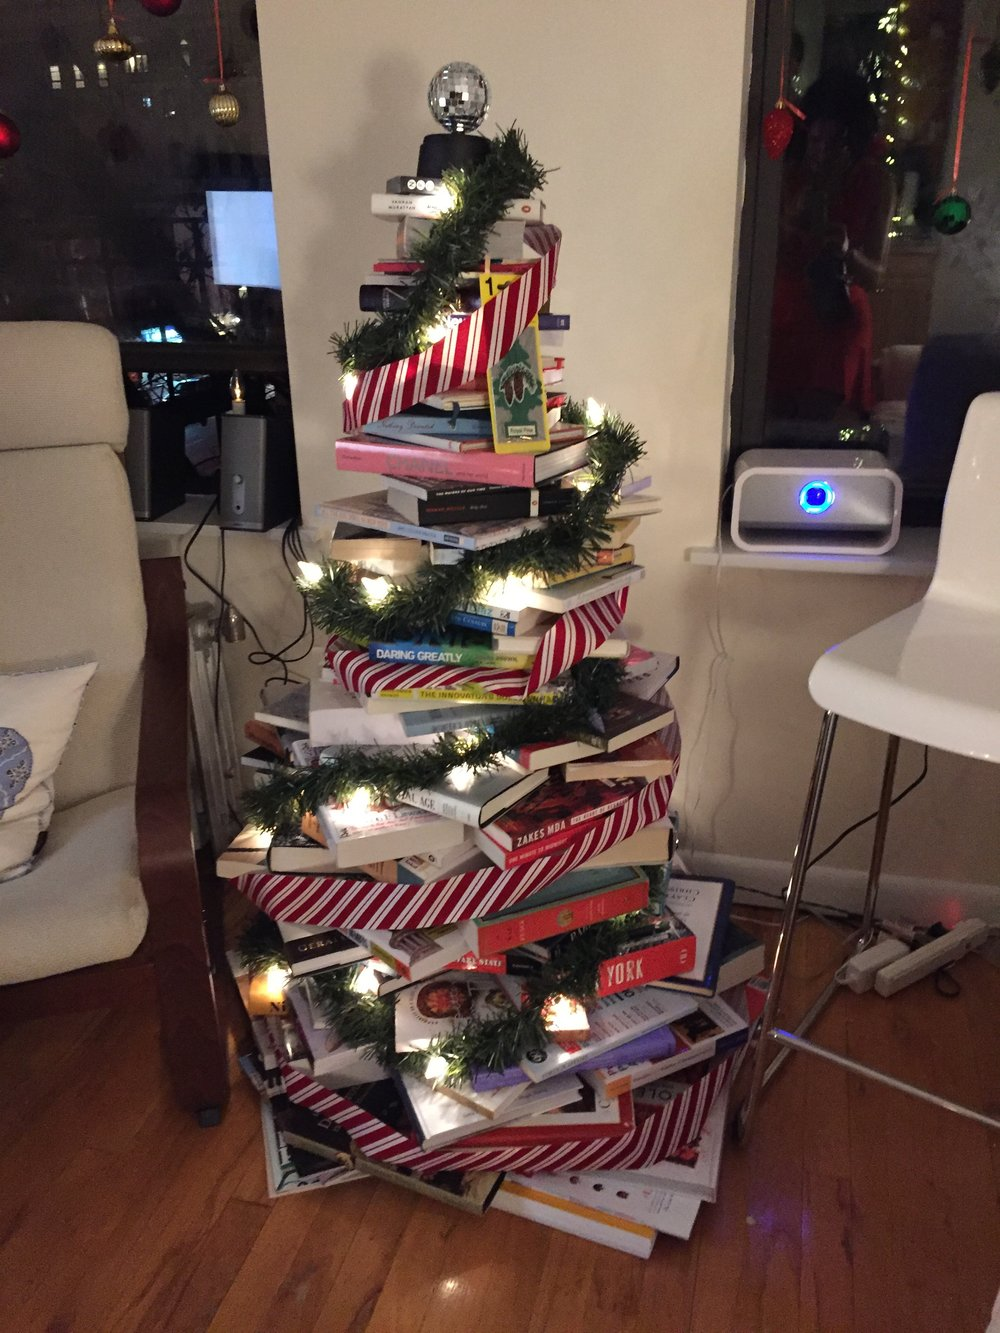 Book tree - and there were books to spare! A true thespian's West Village nook.